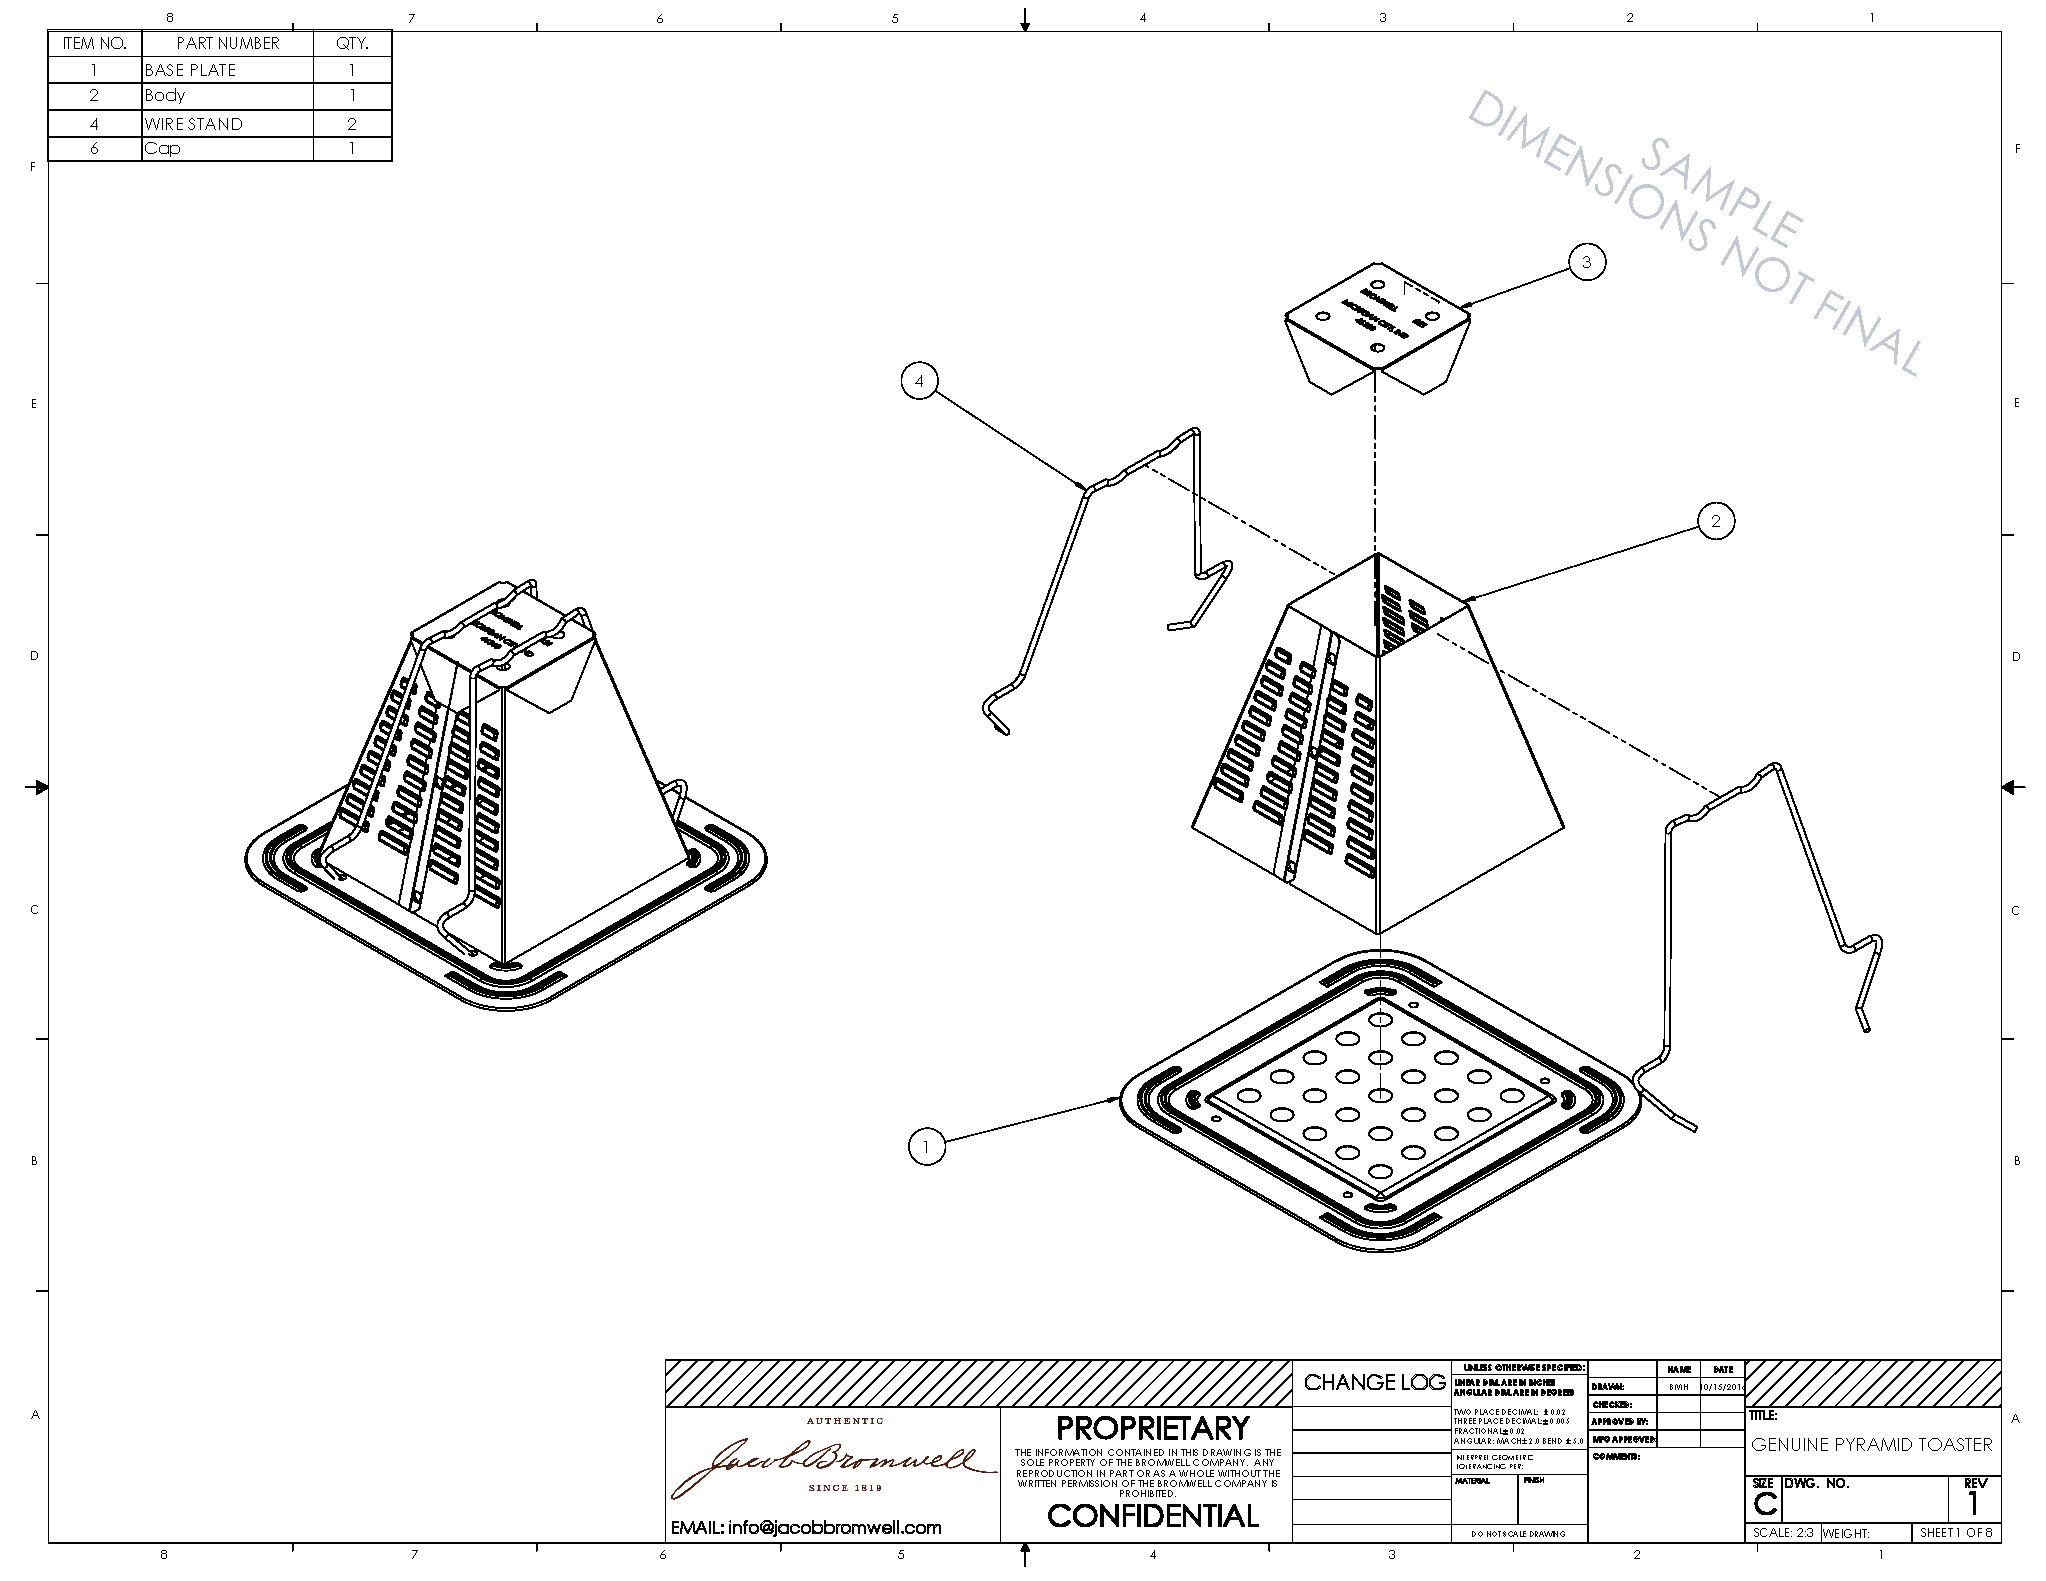 Genuine Pyramid Toaster Documentation_Page_1.png